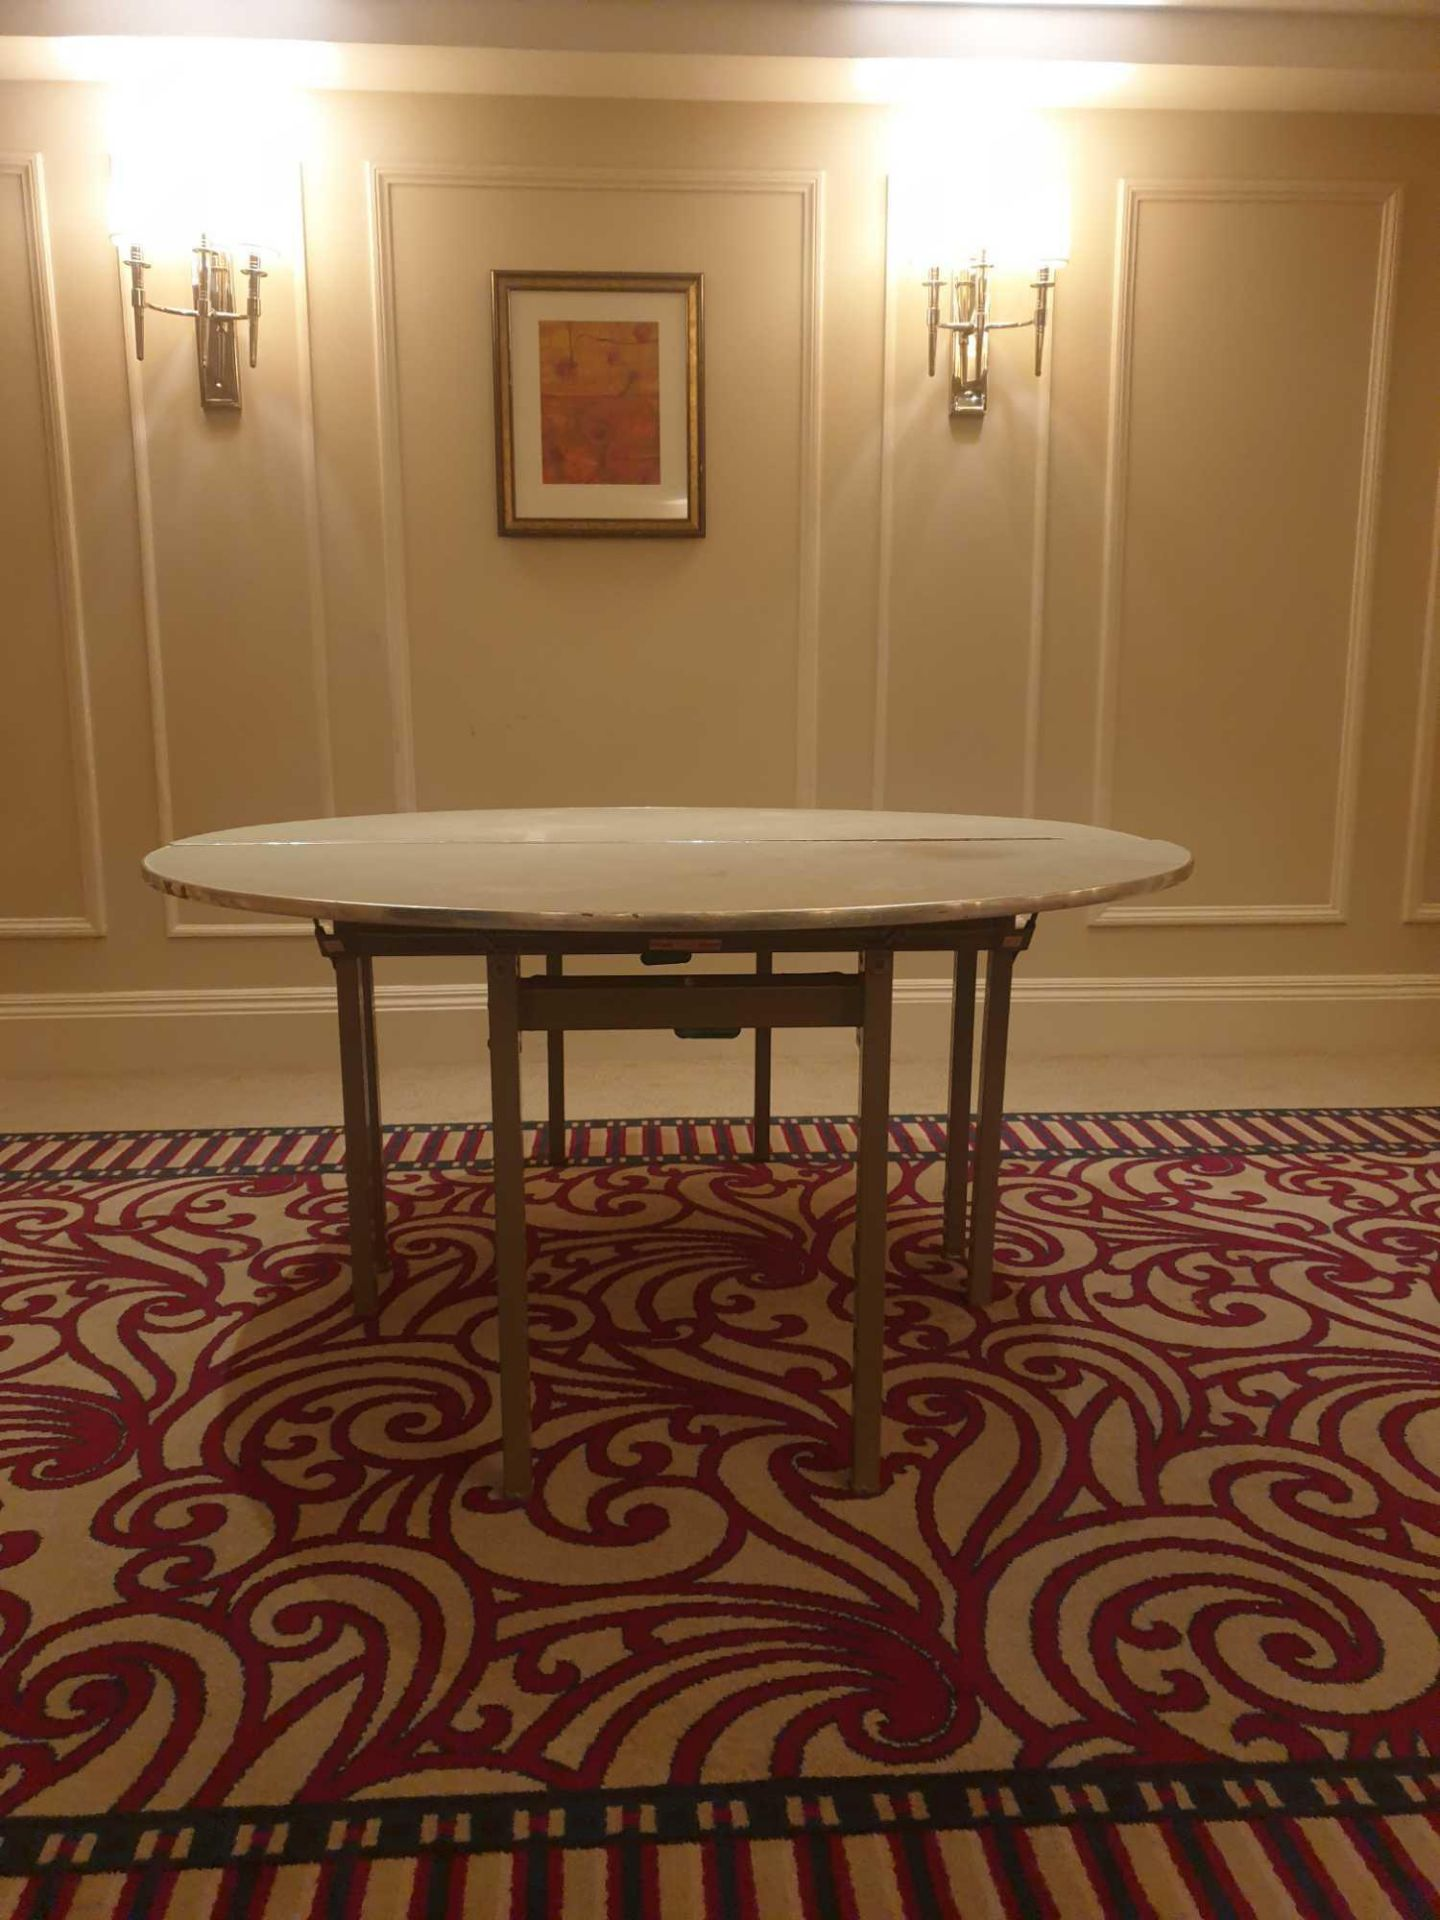 5x Burgess 5ft Folding Flock Padded Round Banquet Table (Two Halves) 153x 153x 72cm ( Loc Mount - Image 2 of 2